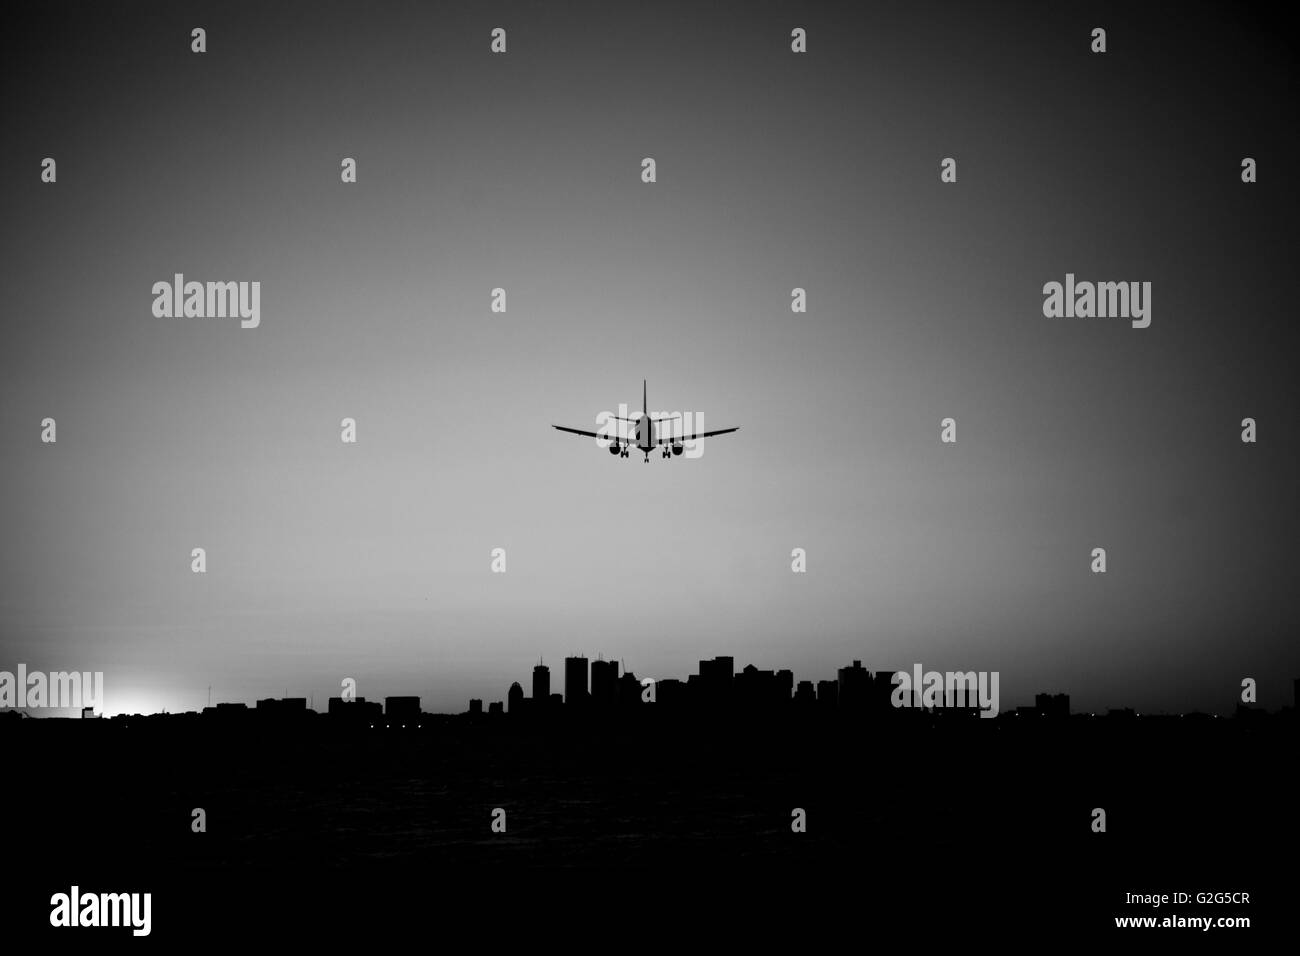 Airplane Approaching Airport, Boston, Massachusetts, USA - Stock Image